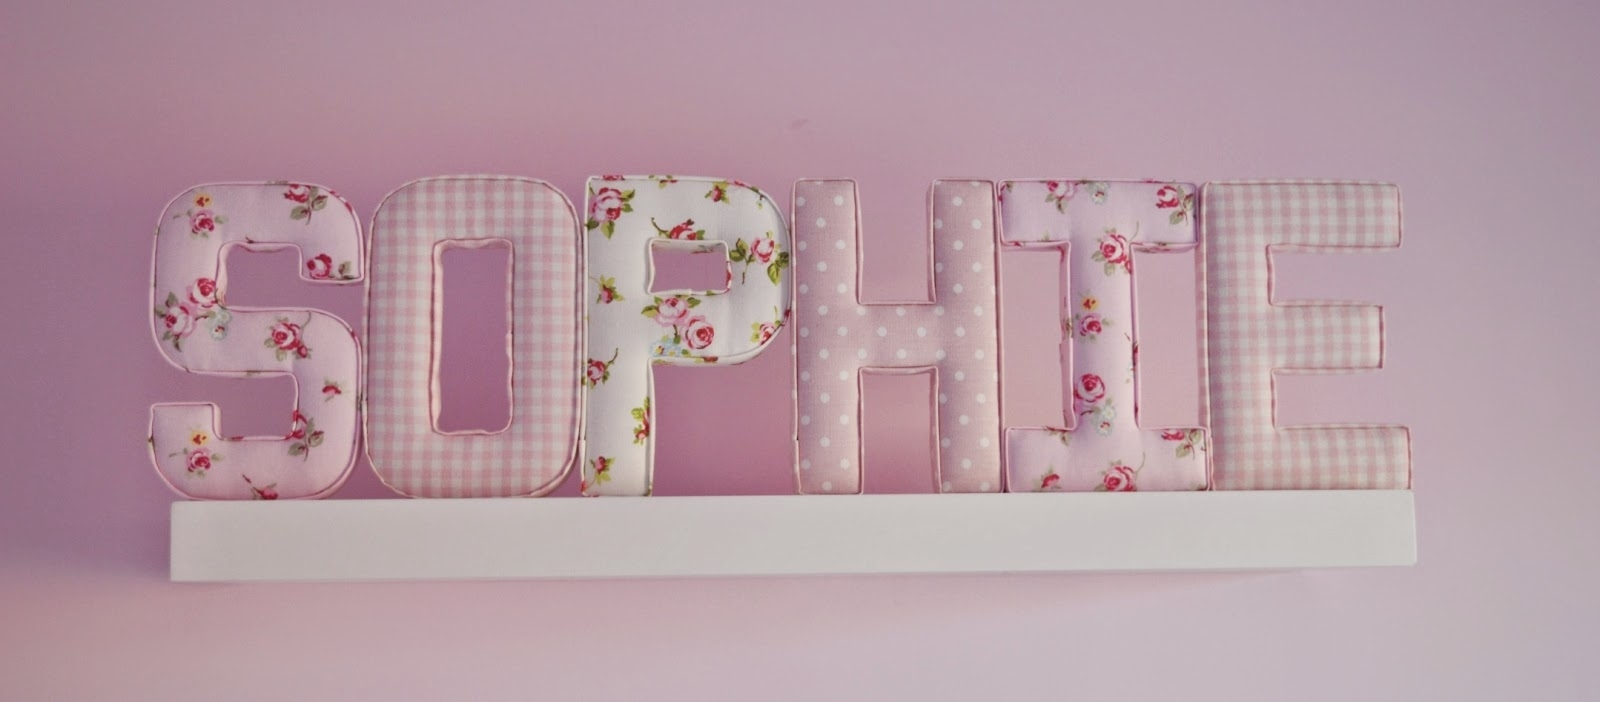 Bedroom. Cute Baby Room Name Letters Ideas As Bedroom Decorations intended for Most Recently Released Fabric Name Wall Art